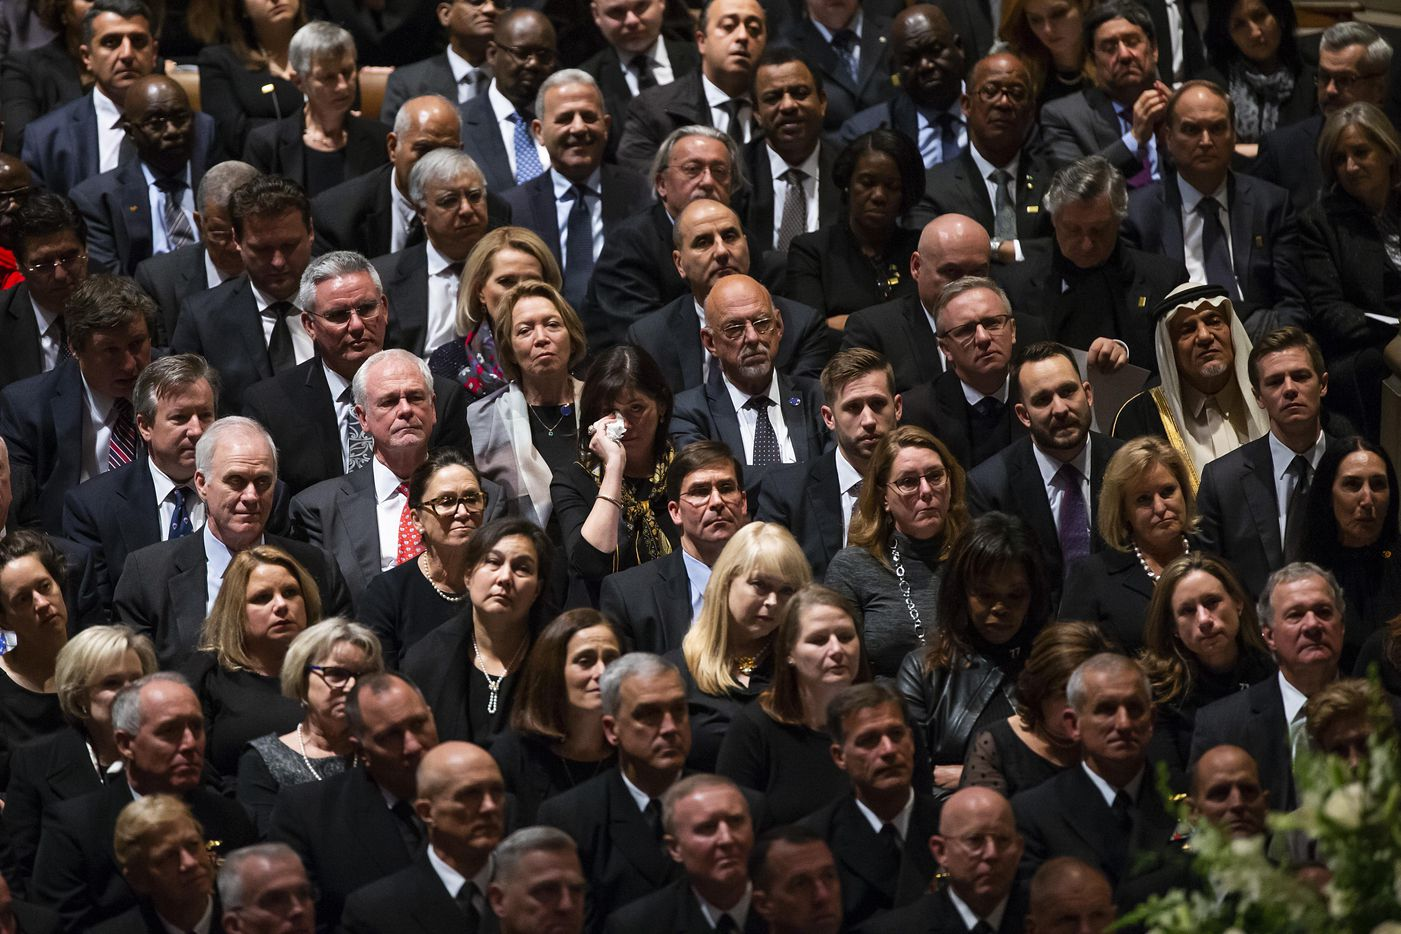 A woman wipes her eyes as former President George W. Bush delivers a eulogy during the State Funeral for his father George H.W. Bush, the 41st President of the United States, at the Washington National Cathedral on Wednesday, Dec. 5, 2018, in Washington. (Smiley N. Pool/The Dallas Morning News)